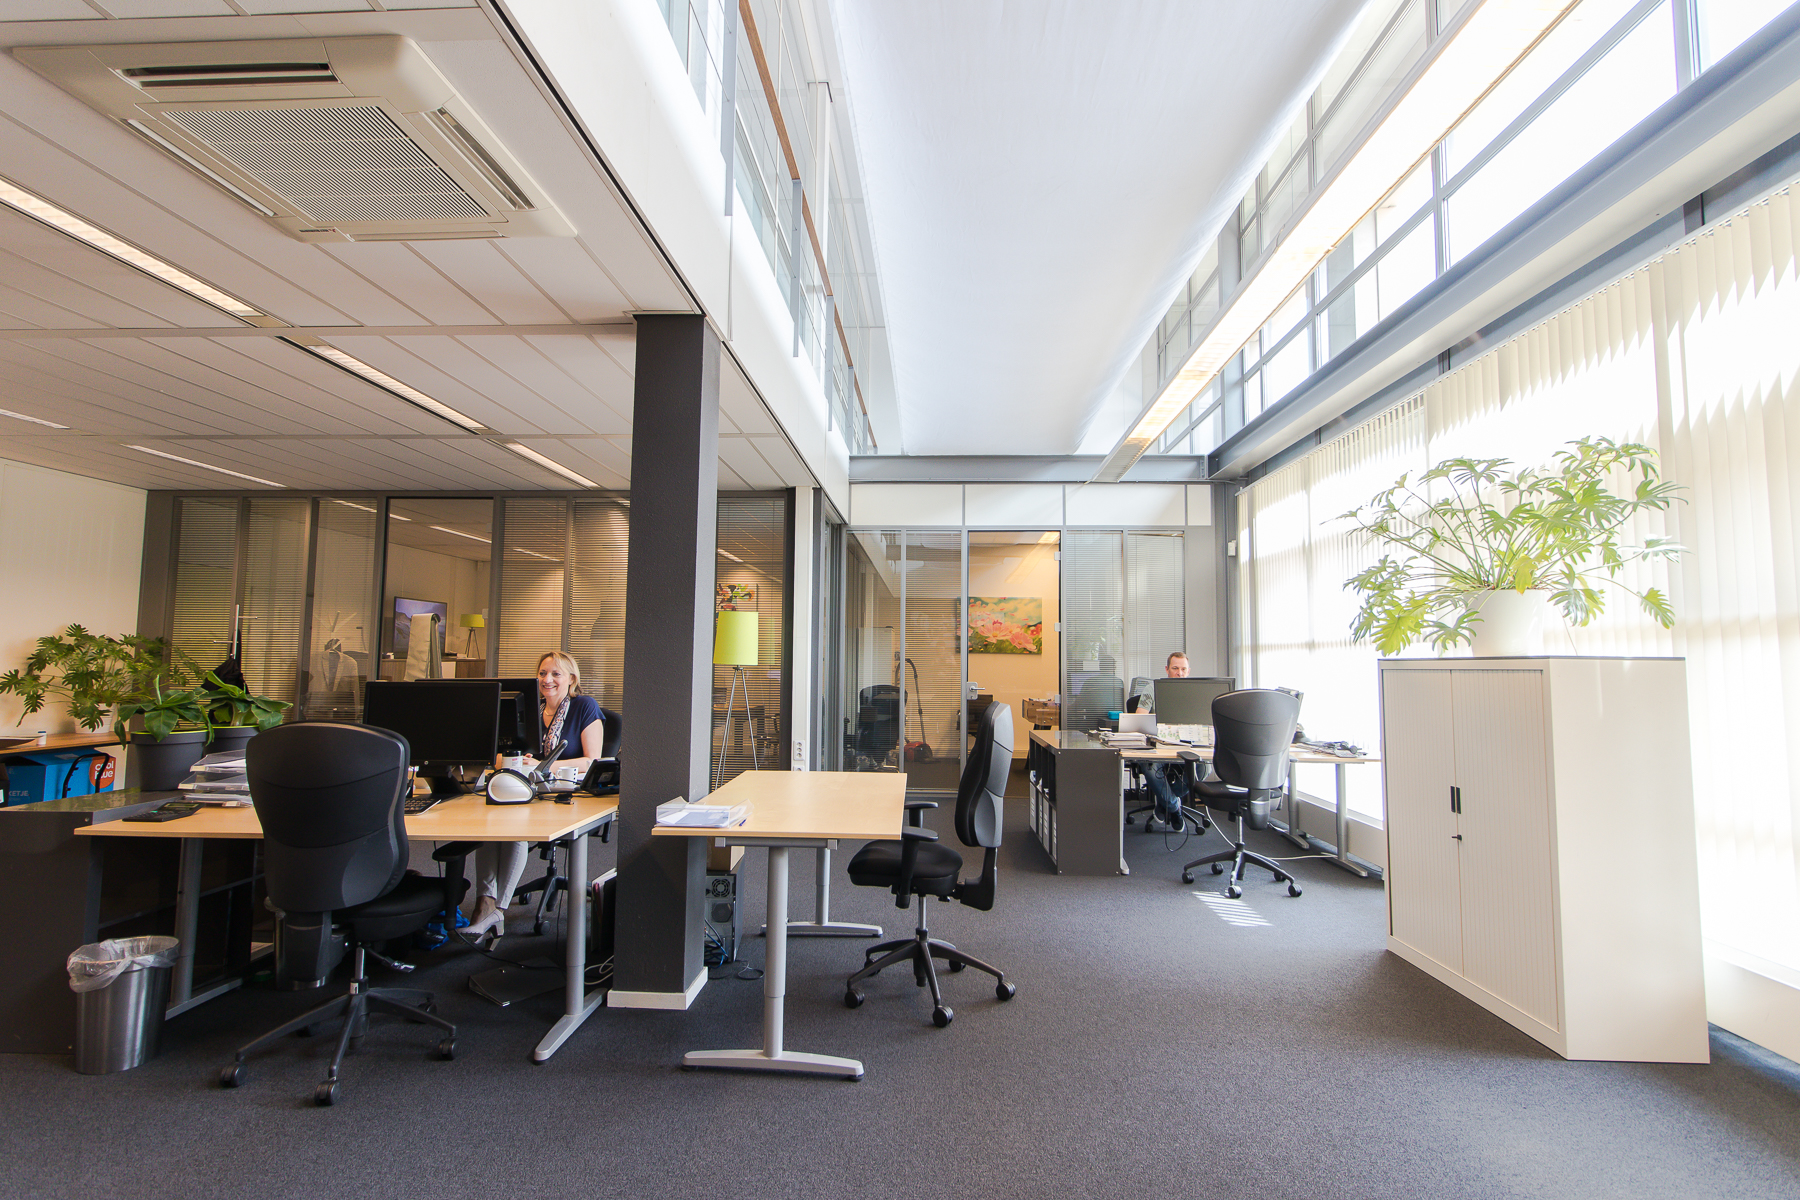 There are flexdesks and office spaces for rent in this building